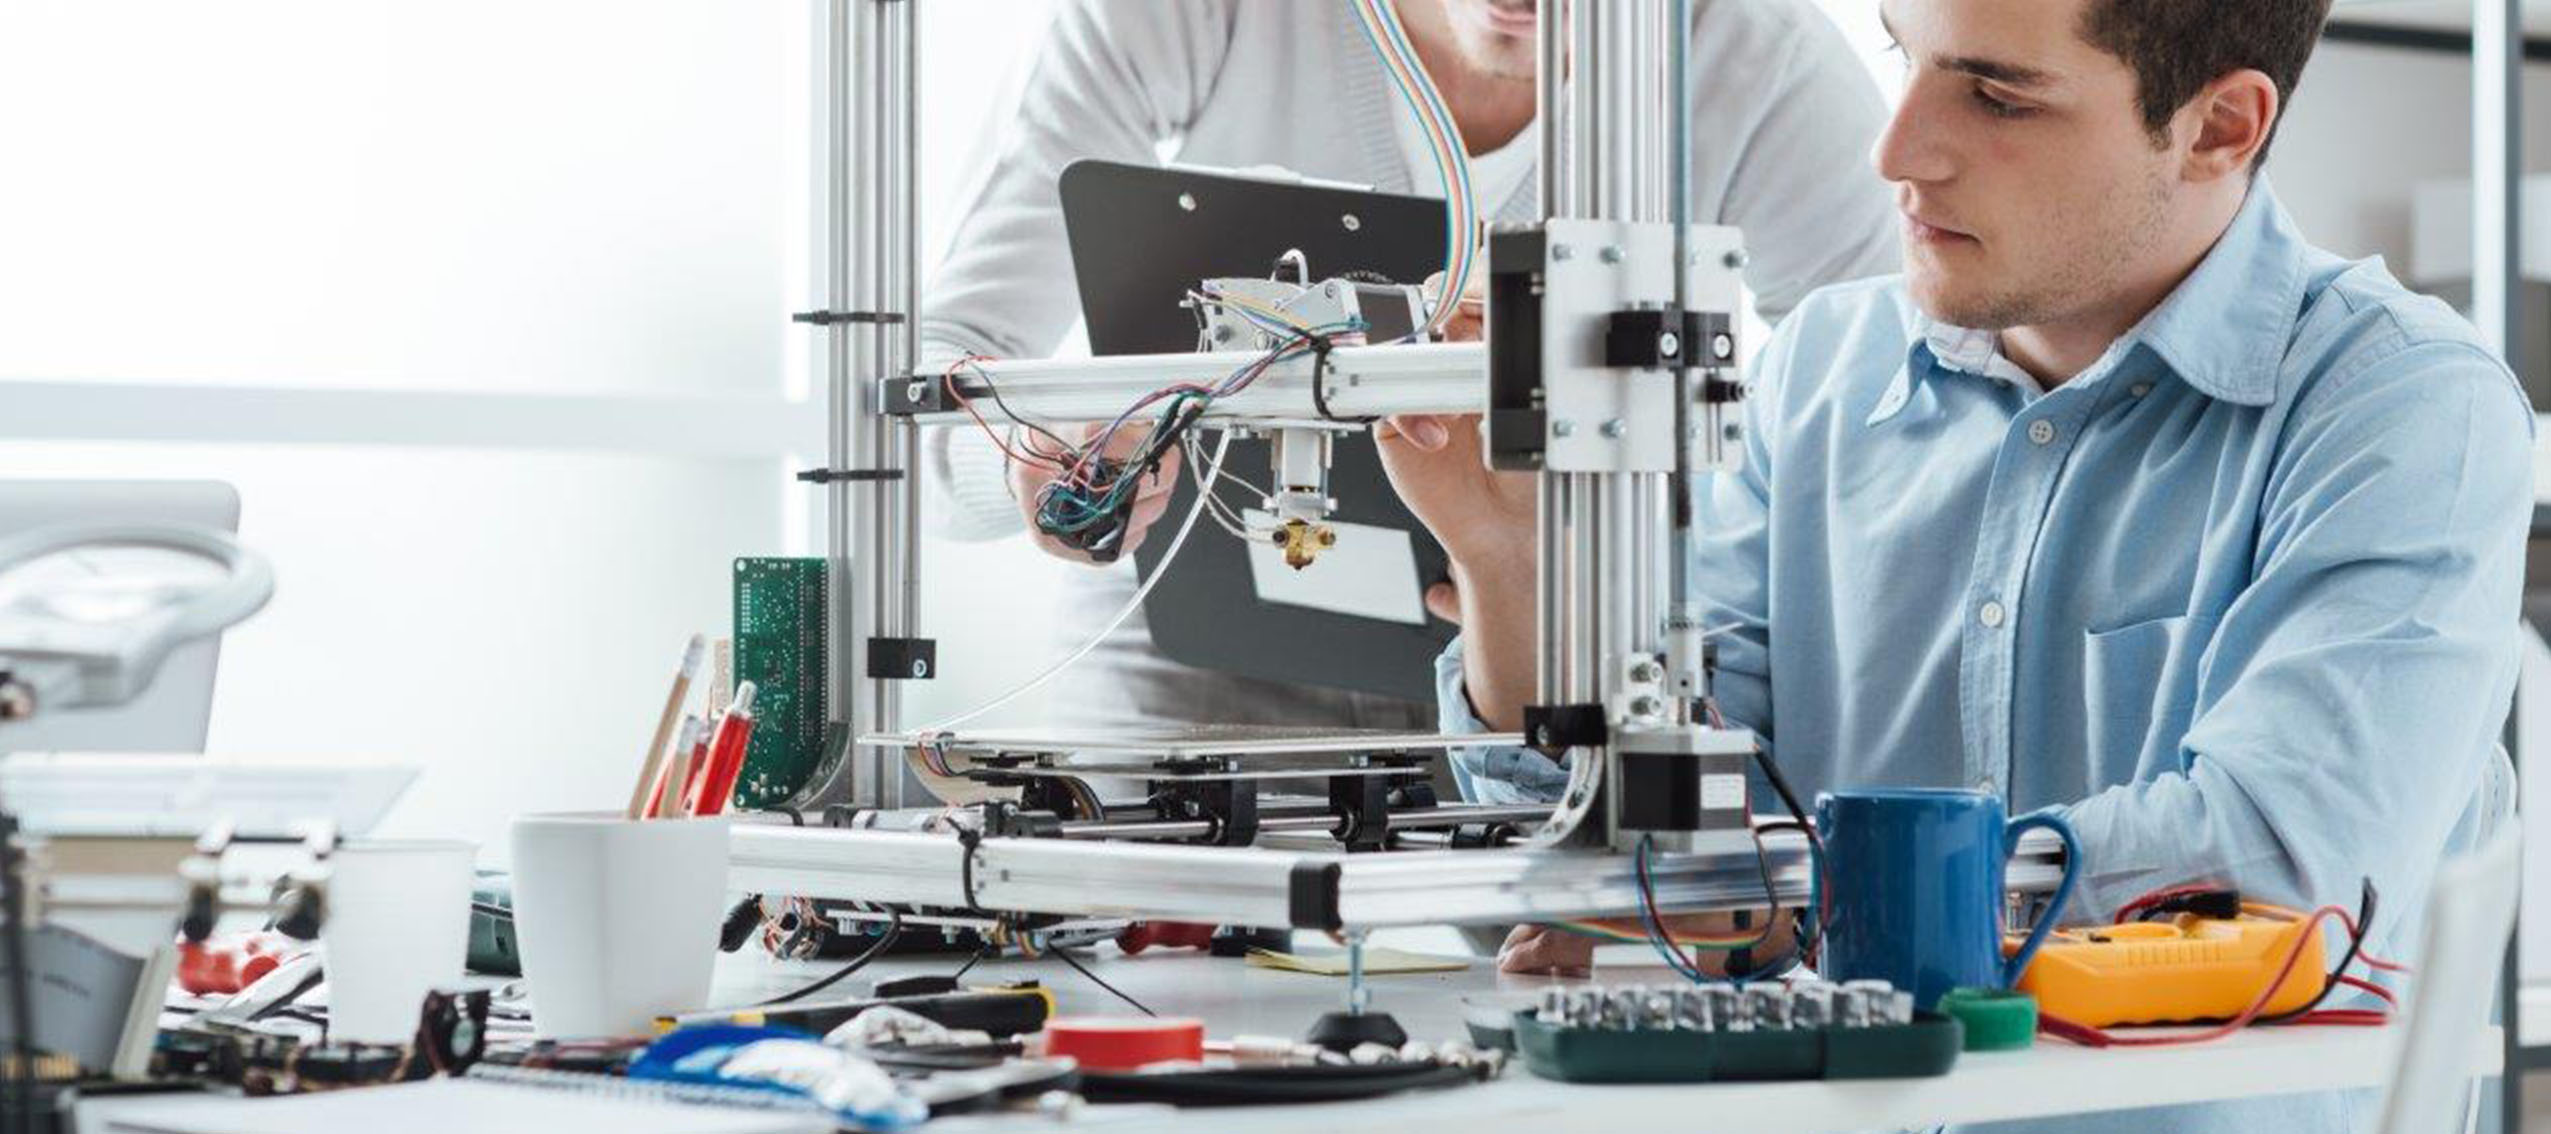 OpenMaker, a community of manufacturers and makers to collaborate and stimulate innovation in manufacturing